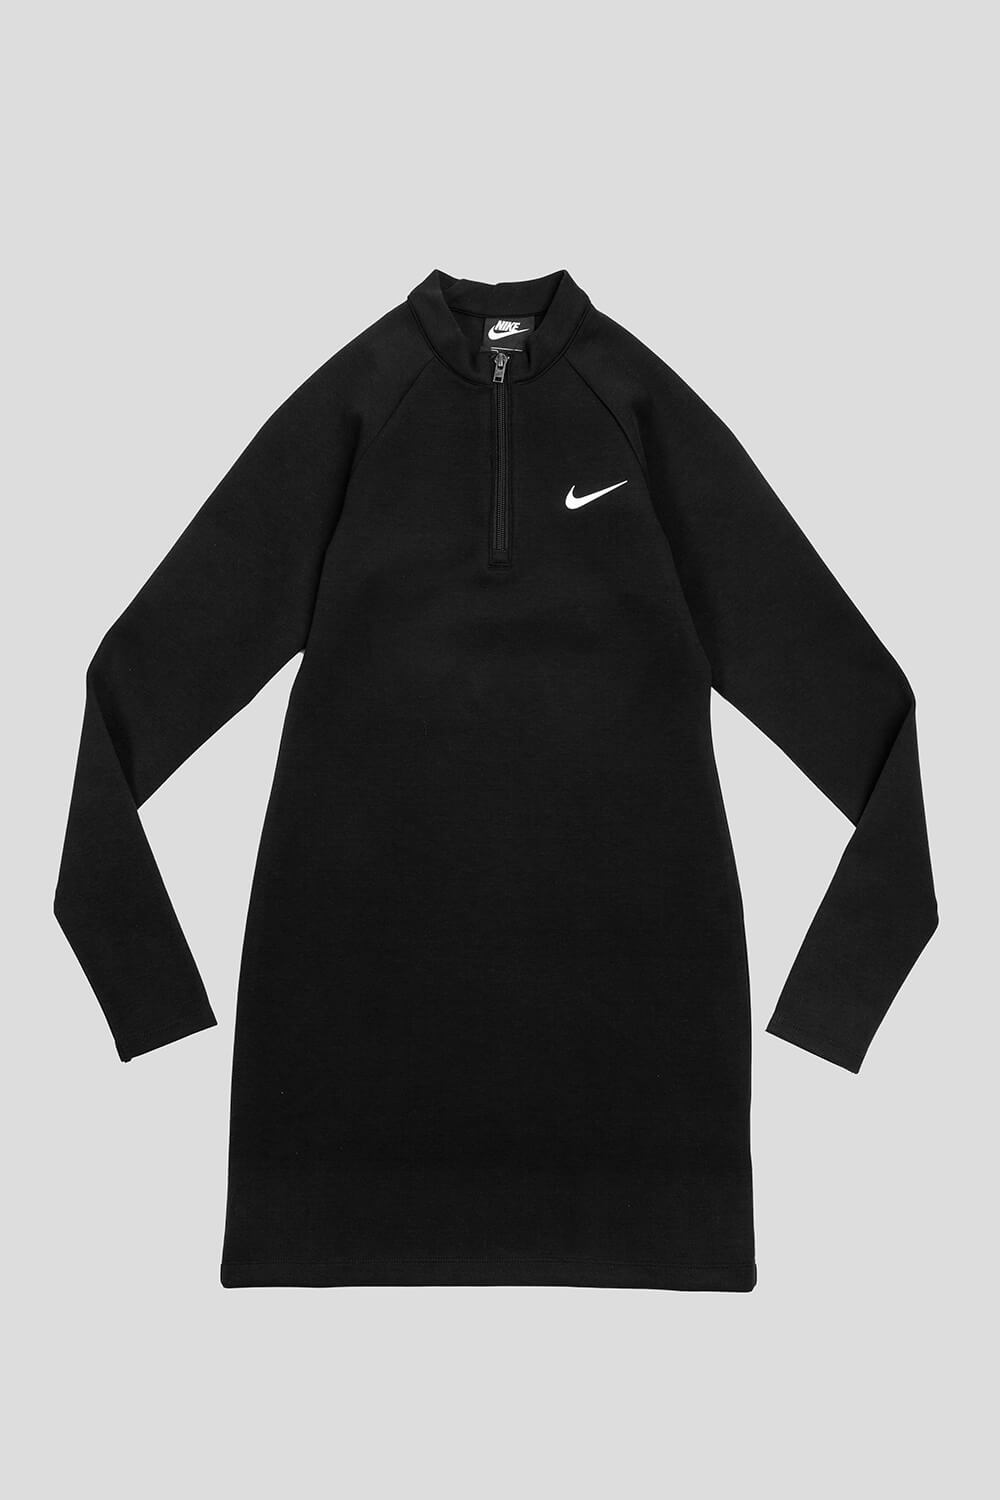 NSW Longsleeve Dress